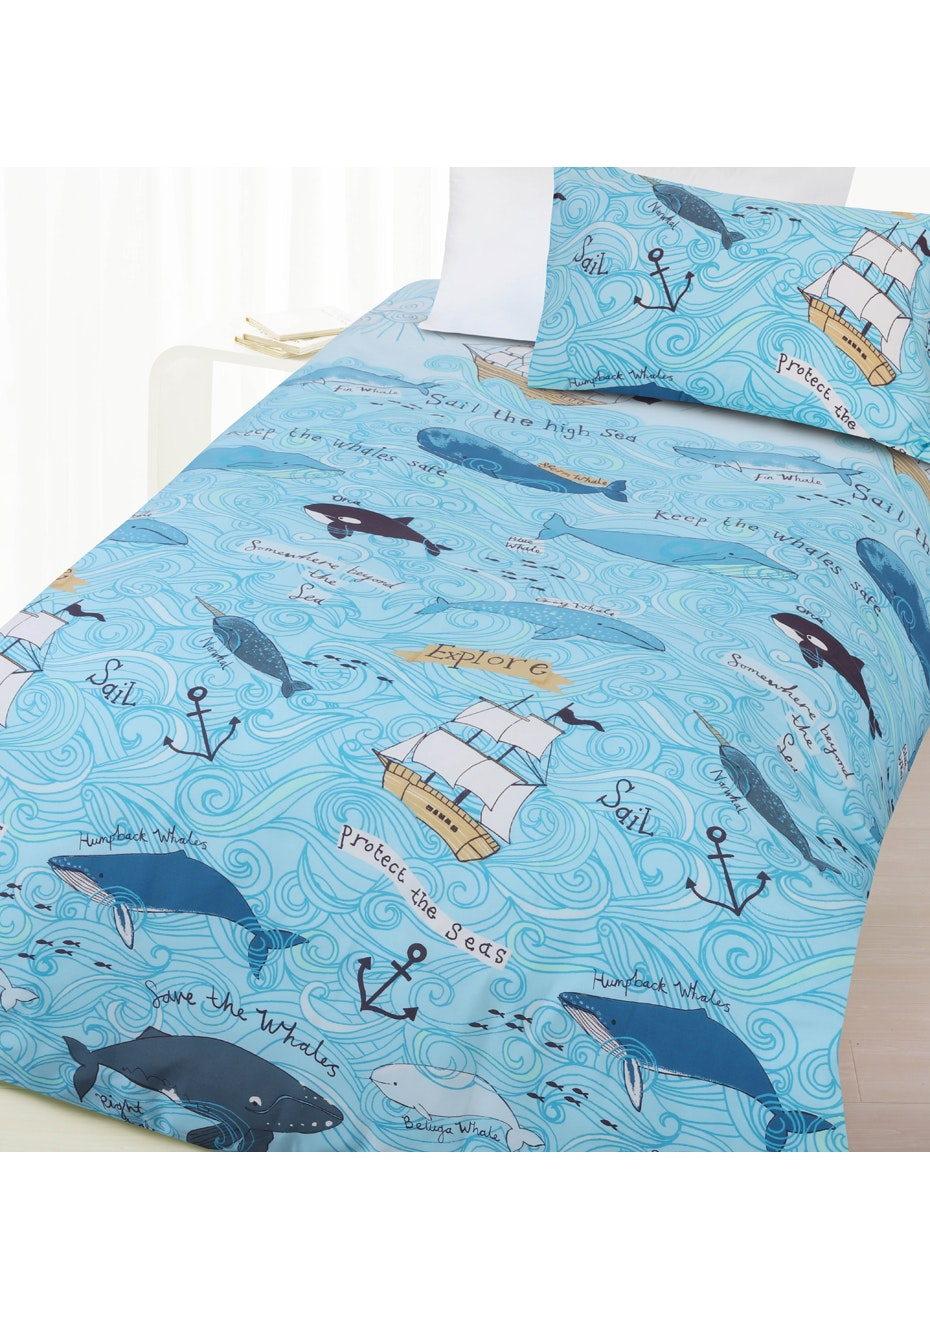 Whales Glow in the Dark Quilt Cover Set - Double Bed